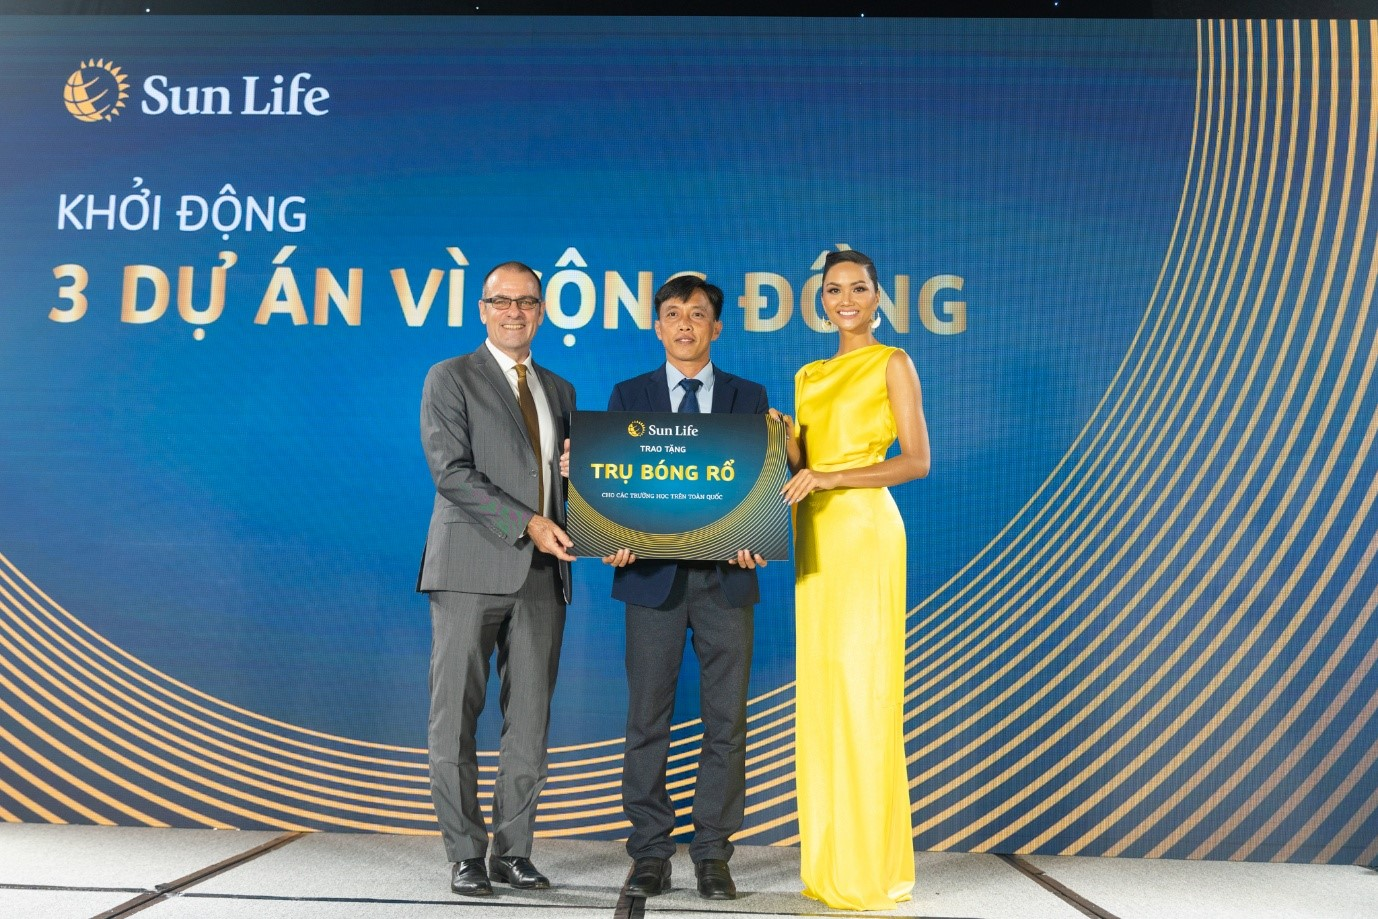 Sun Life Vietnam General Director Larry Madge (L) and Miss Universe Vietnam 2017 H'Hen Nie (R) at the launch of Sun Life Vietnam's three community programs in Ho Chi Minh City. Photo: Sun Life Vietnam